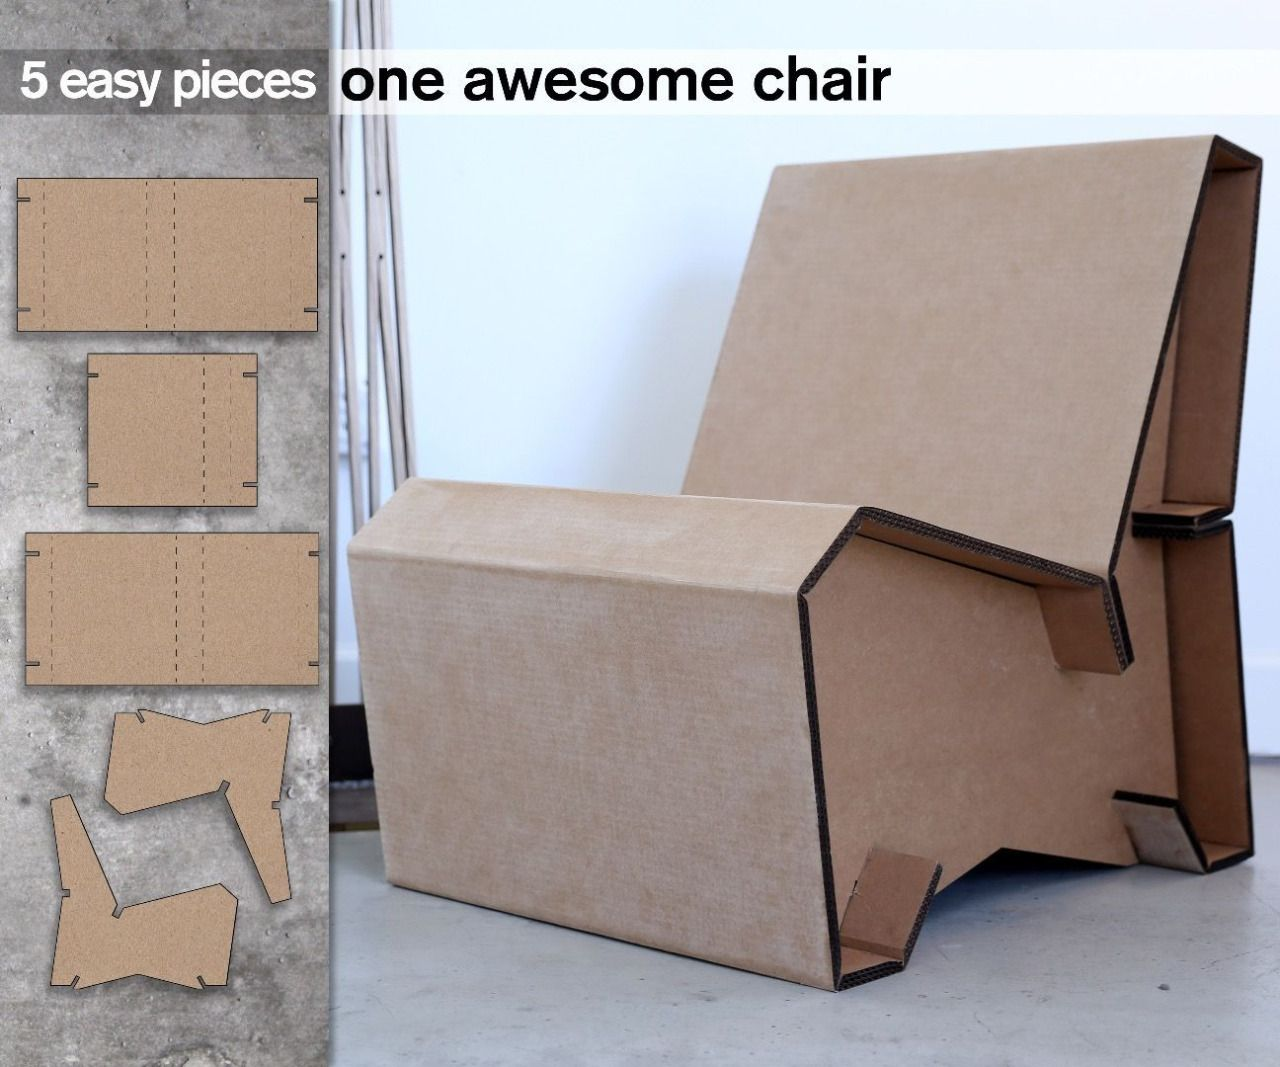 Cardboard chair design no glue - 5 Piece Cardboard Chair No Fasteners No Glue Just Friction And Slots